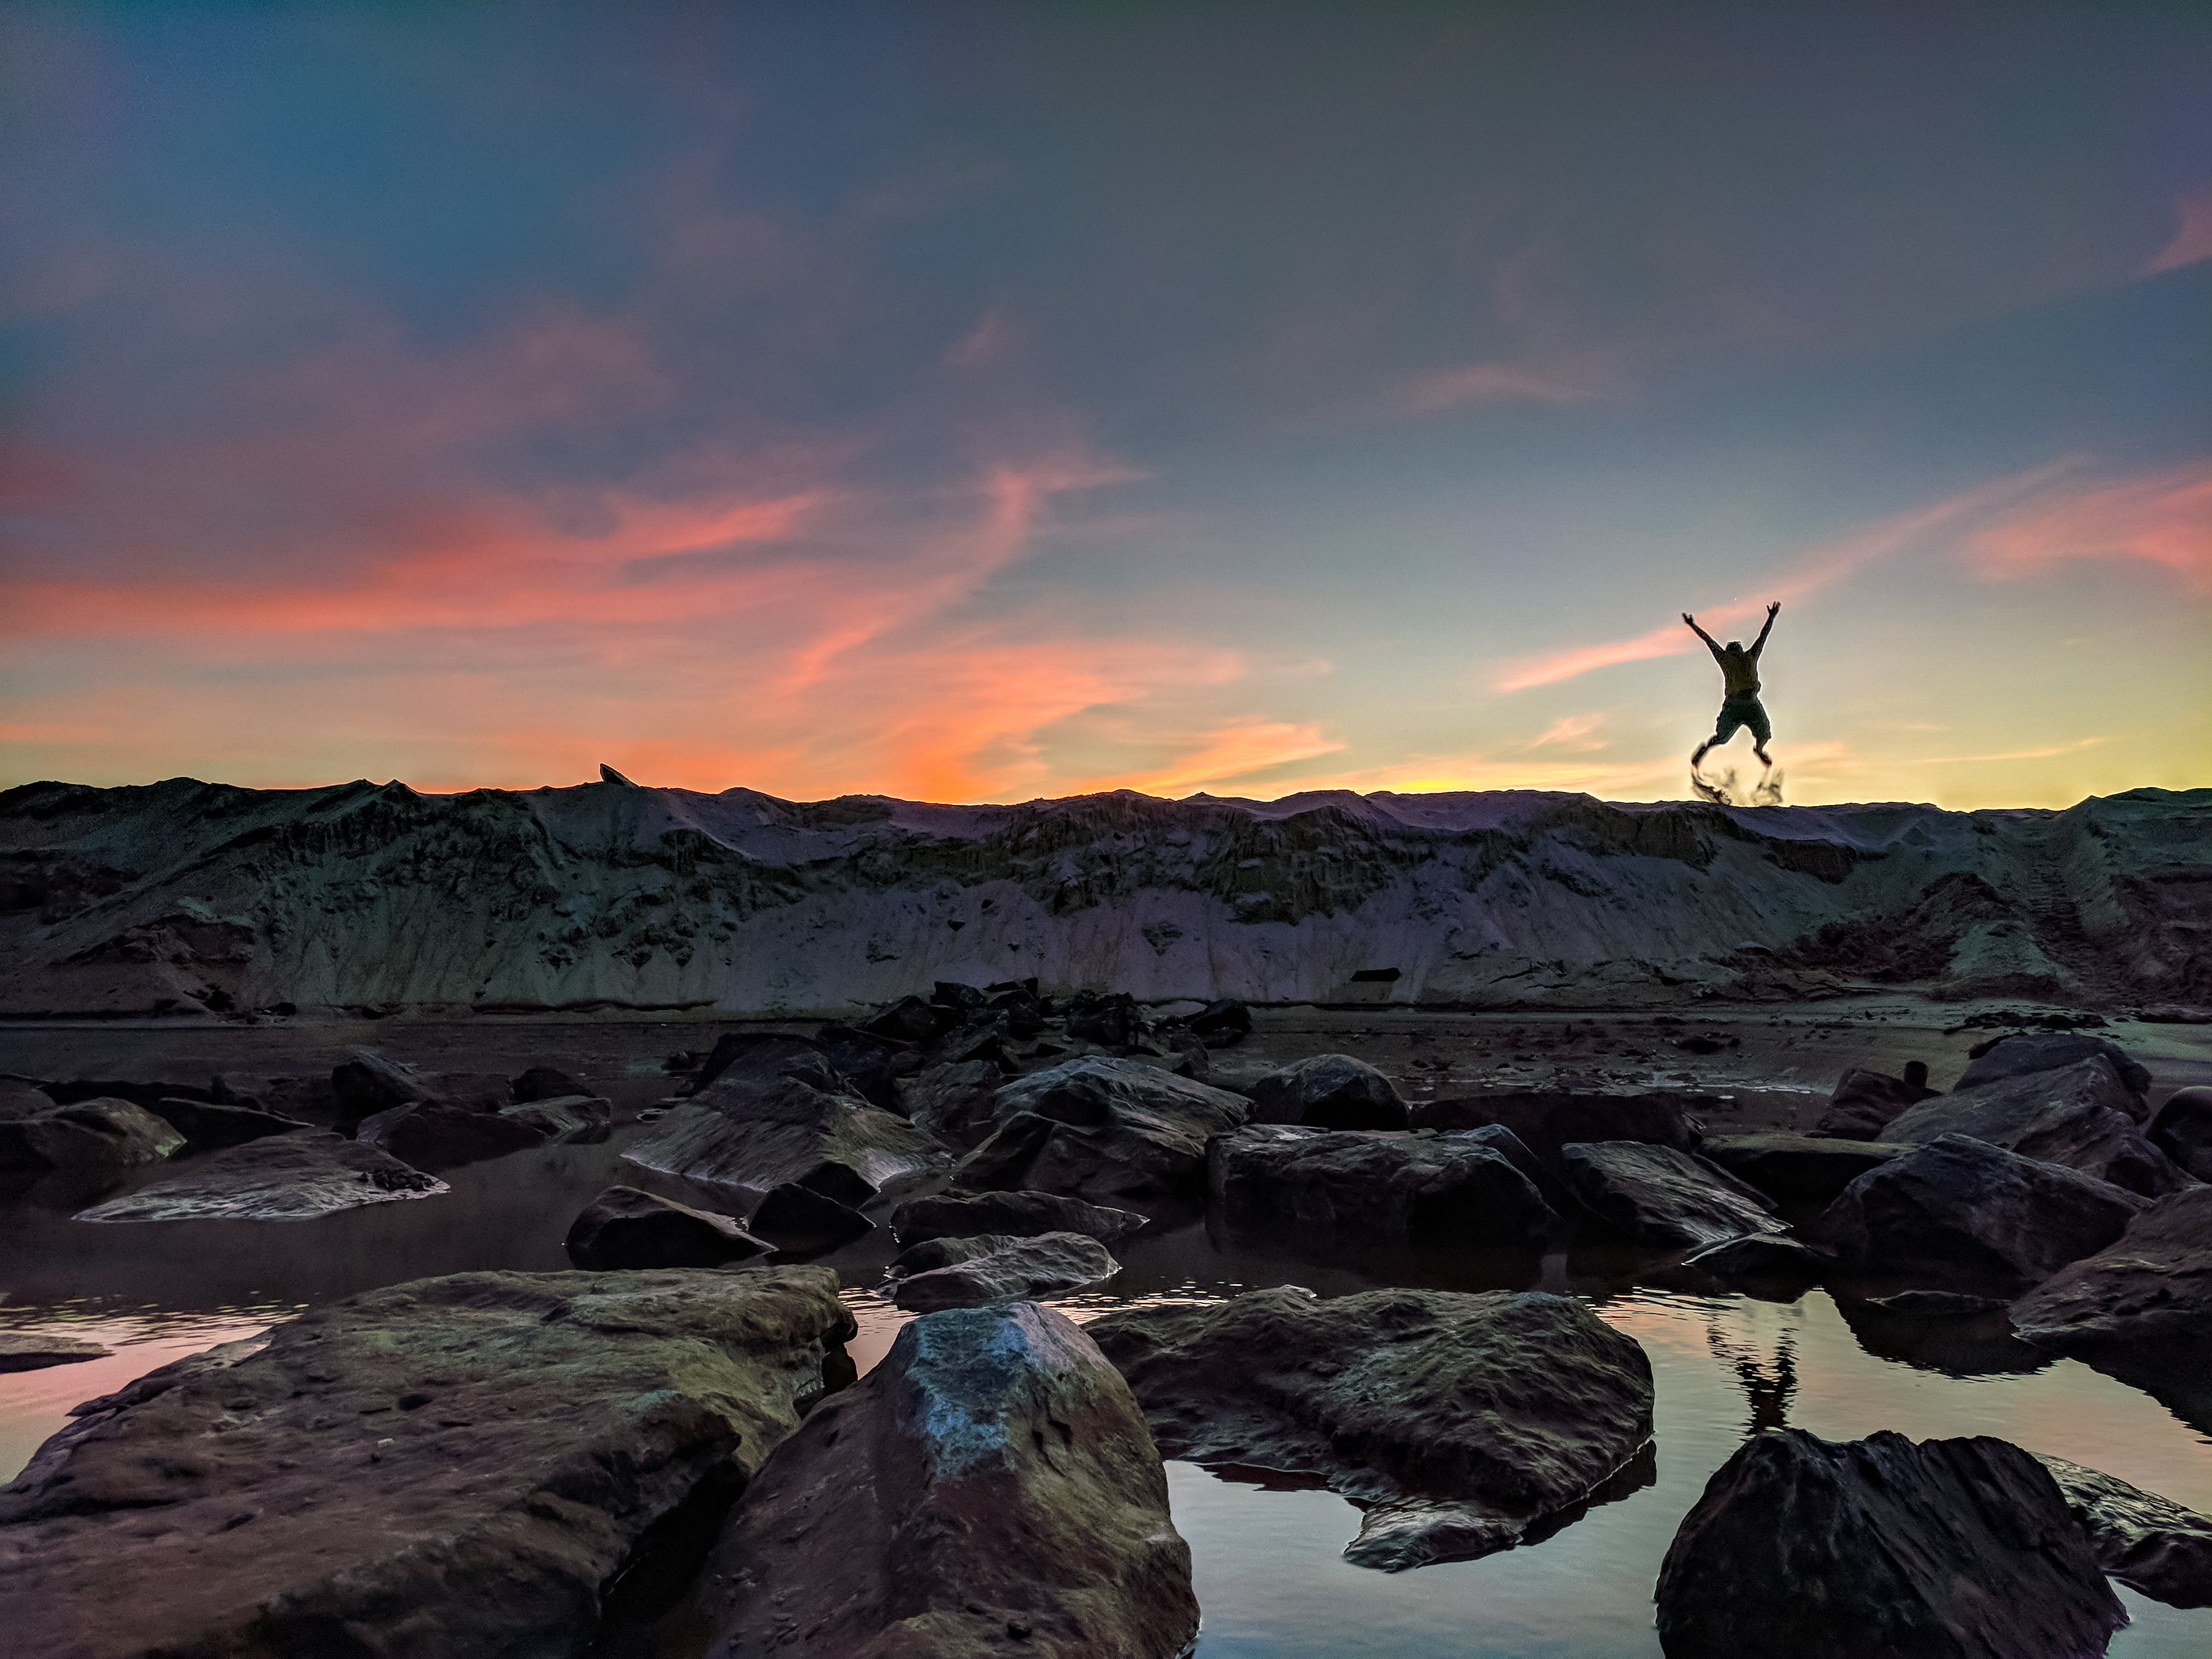 Person Jumping on Mountain Photo